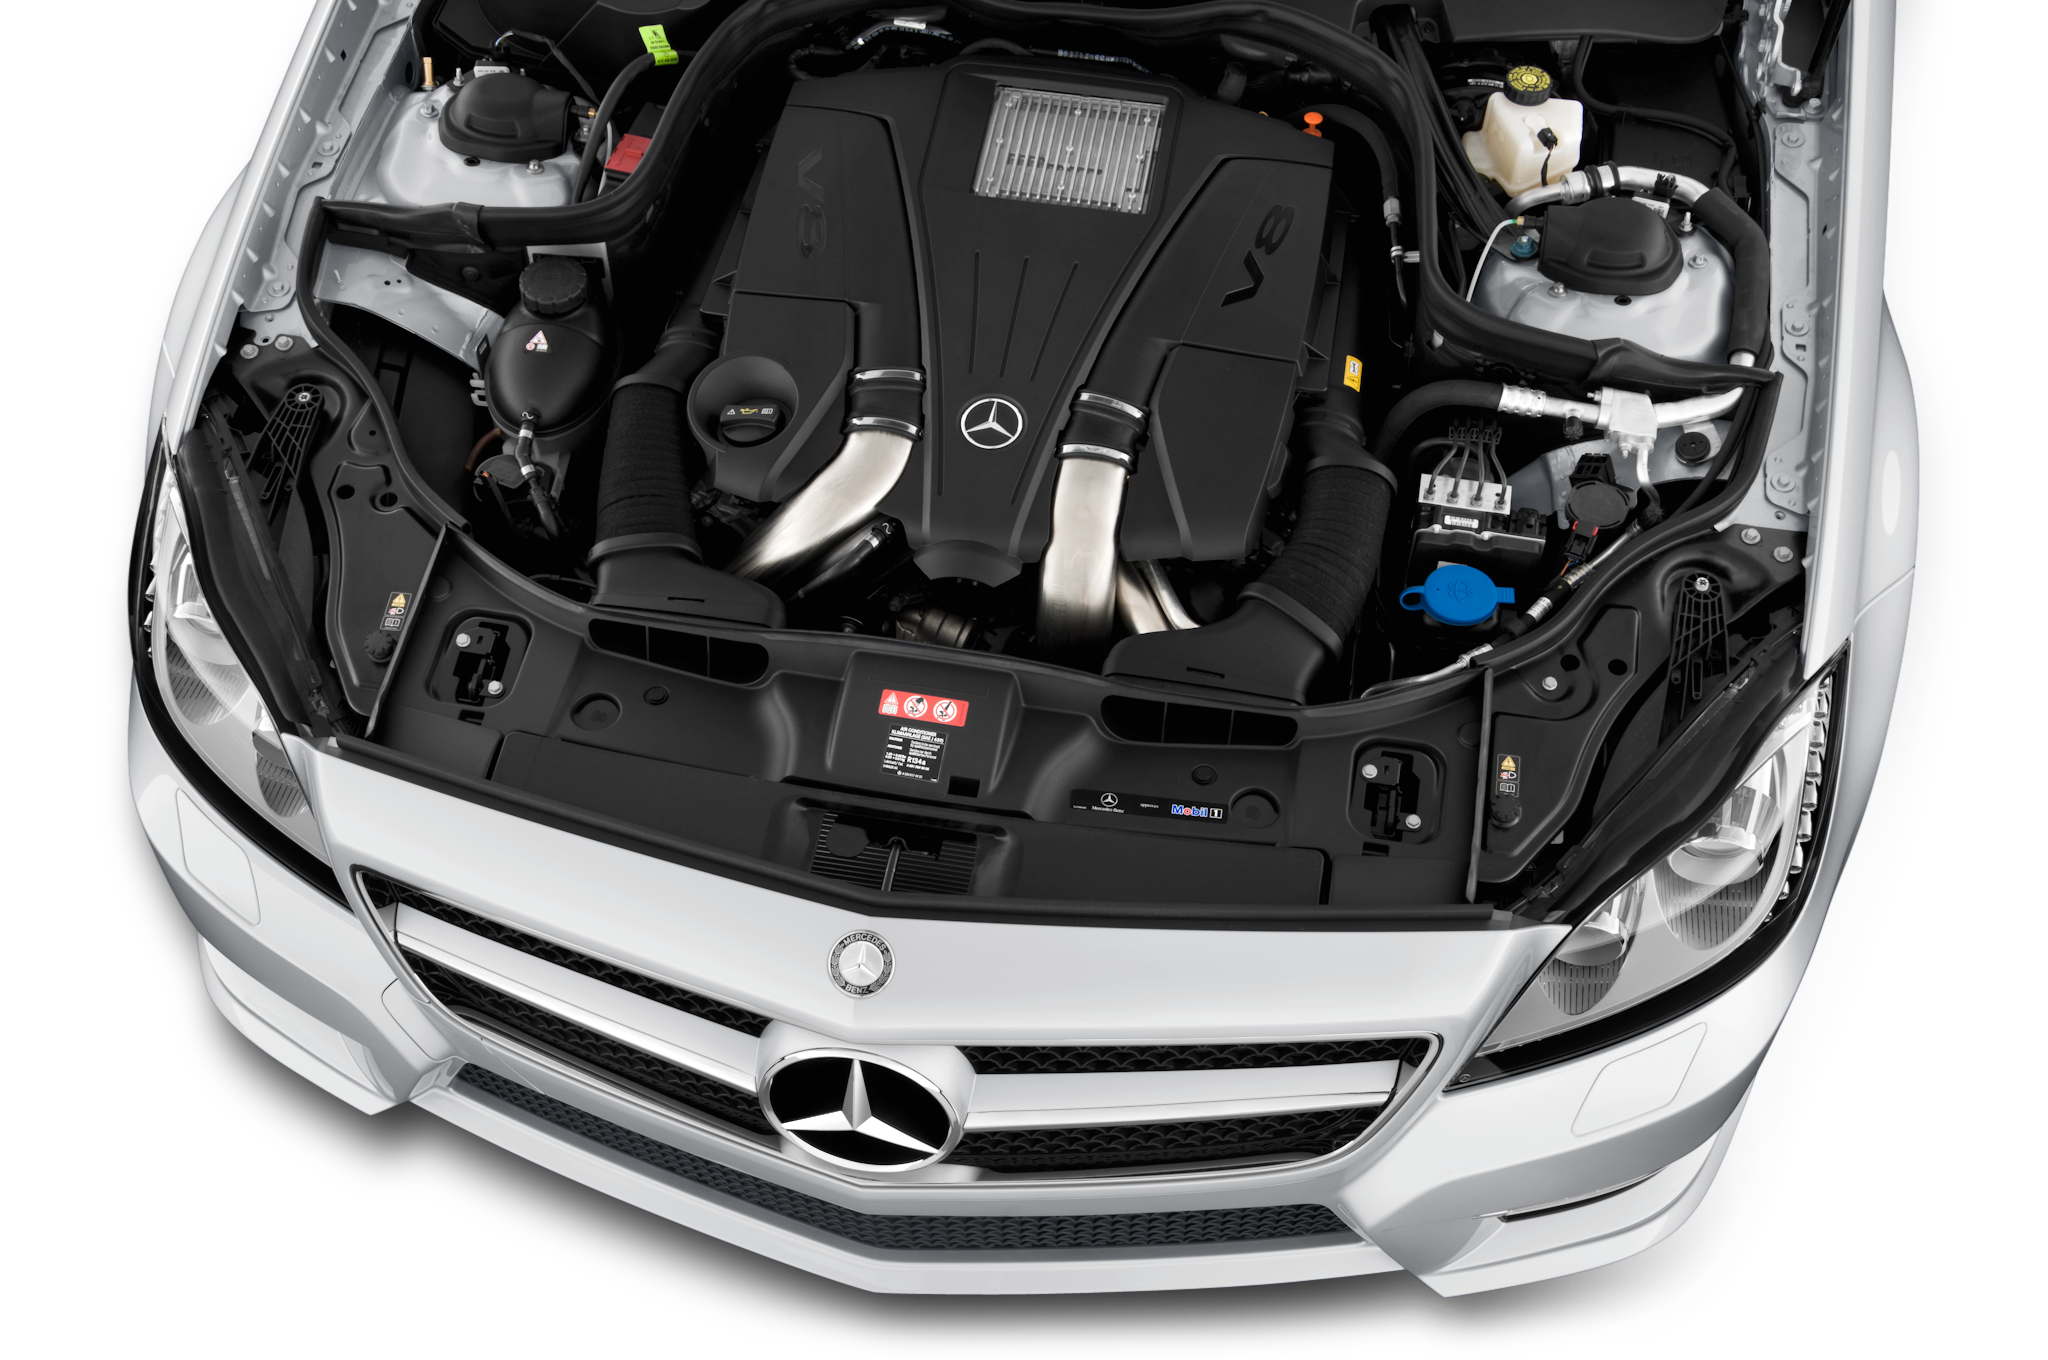 Feature flick 2014 mercedes benz cls63 s amg tested on for Mercedes benz engine oil specifications